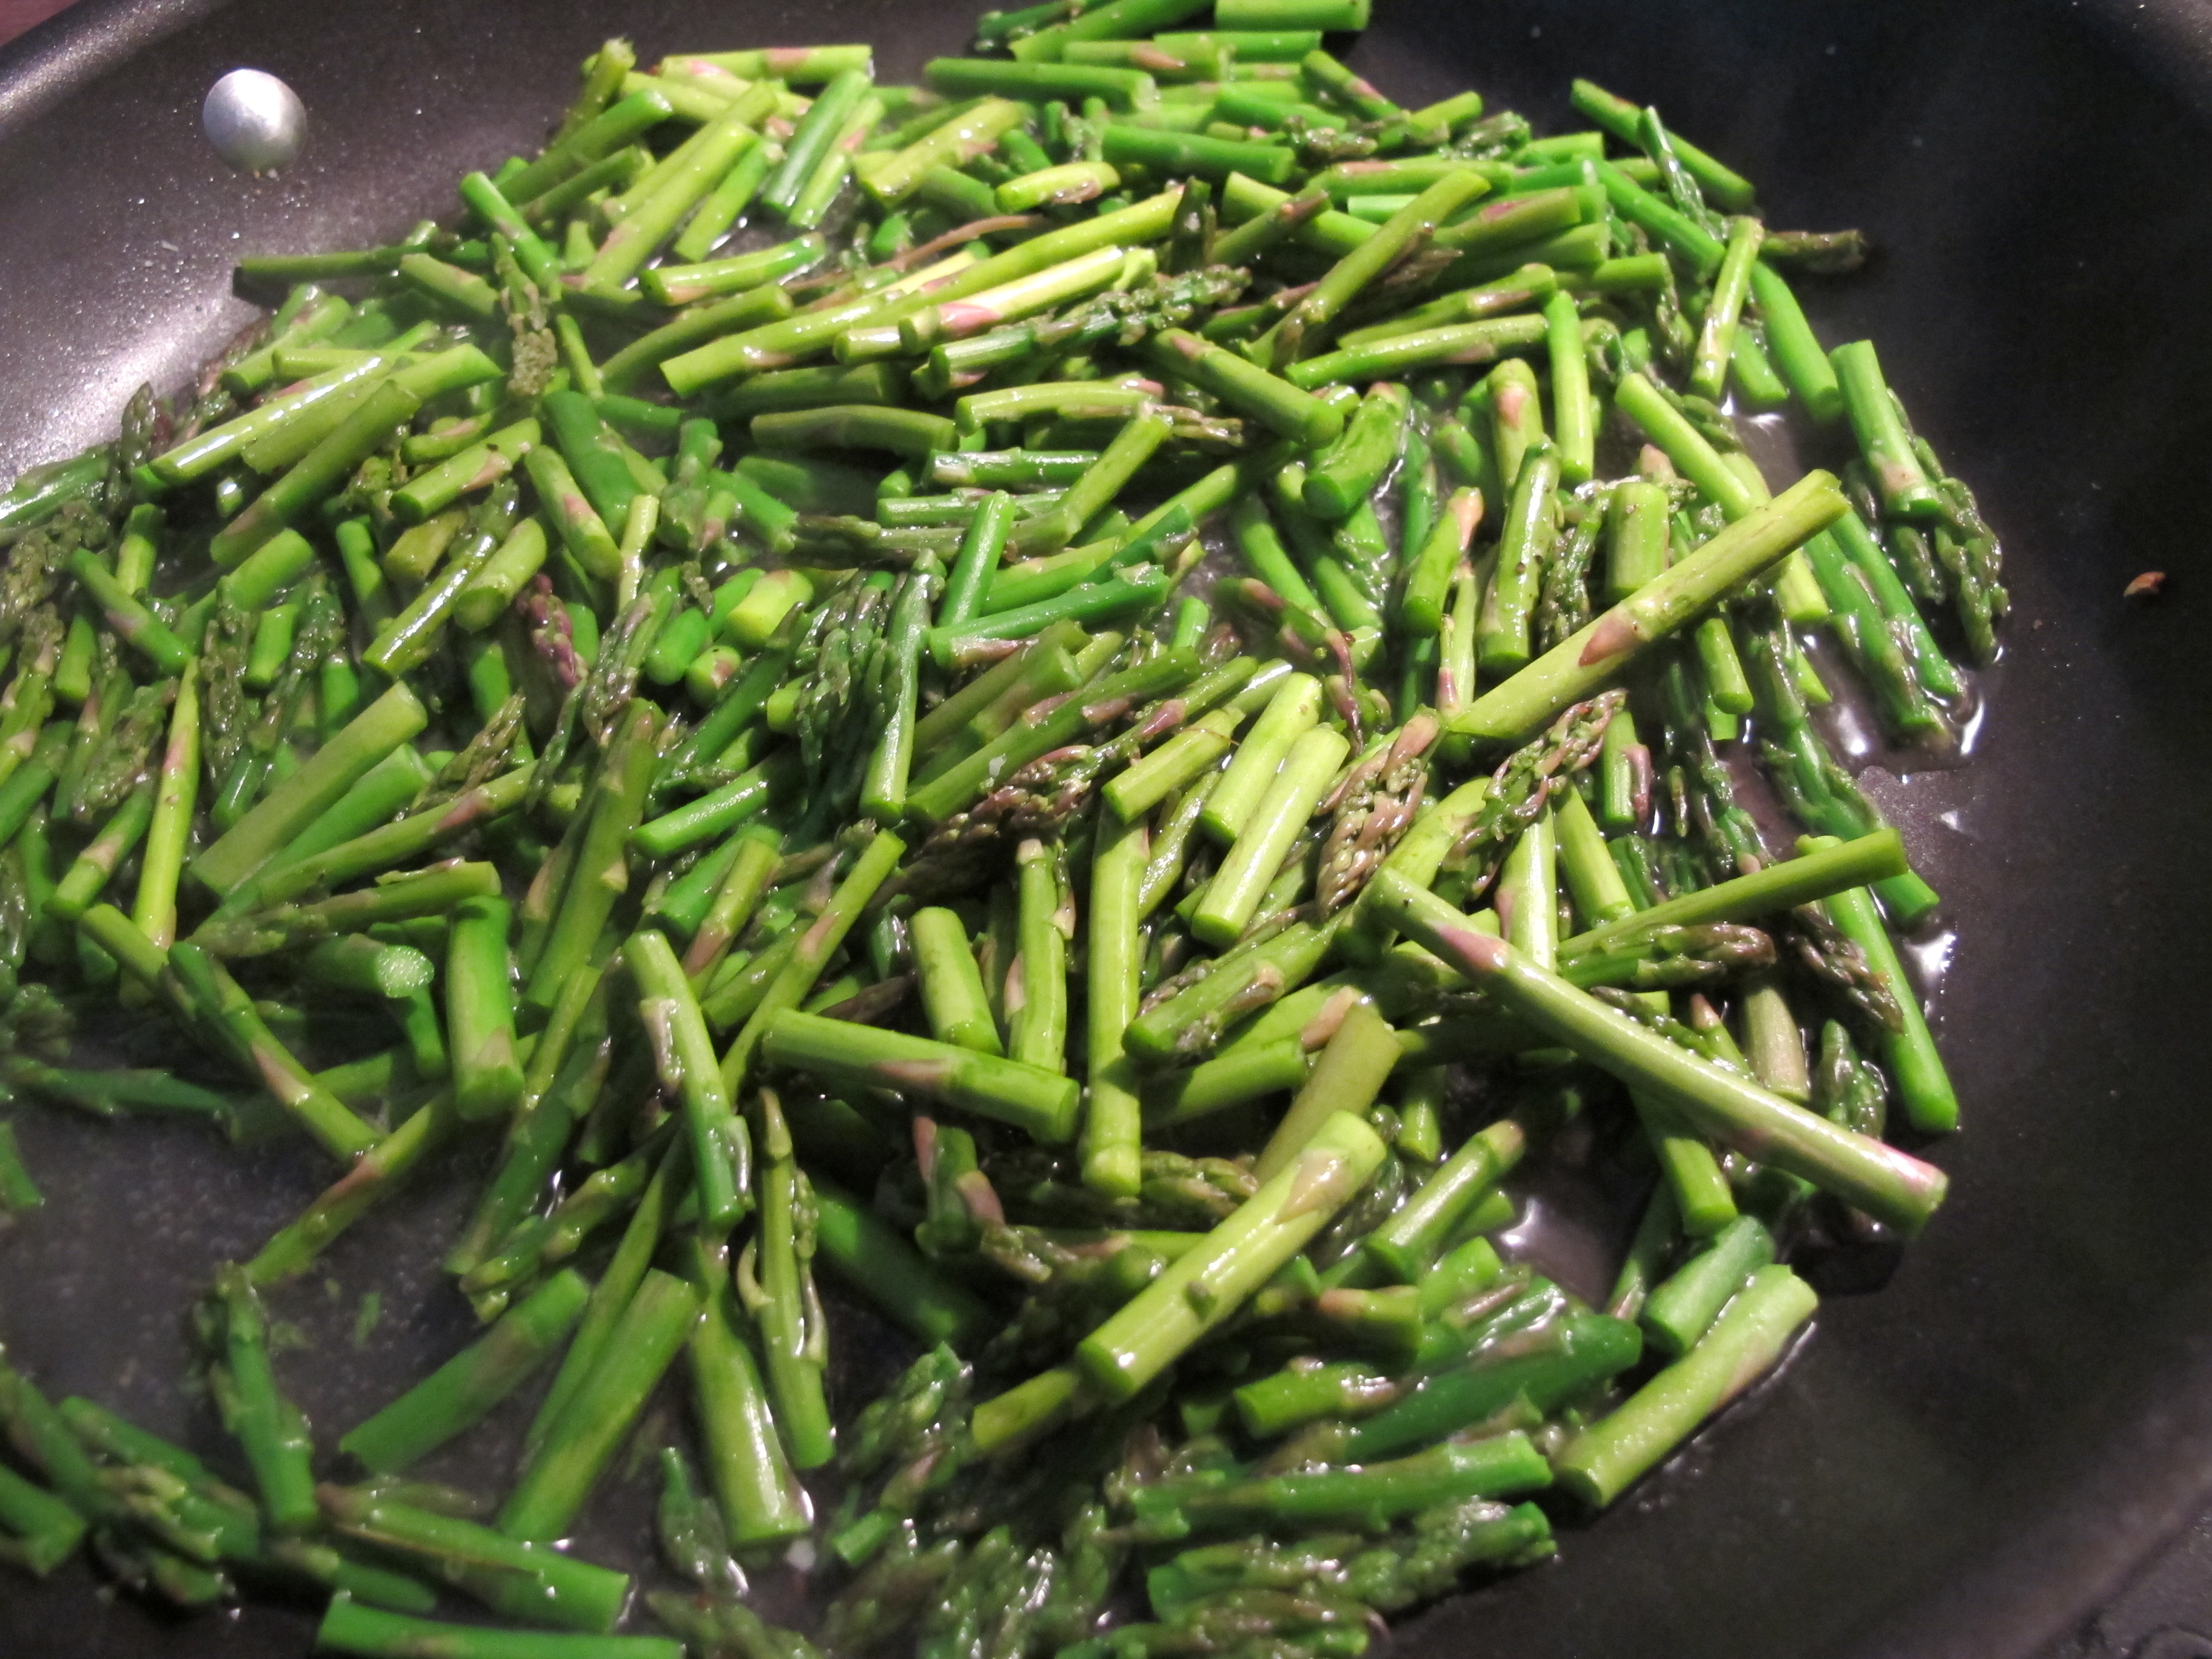 Season The Asparagus With A Sprinkle Each Of Salt And Pepper Let Cook 23  Minutes, Stirring, Or Until Just Barely Tender